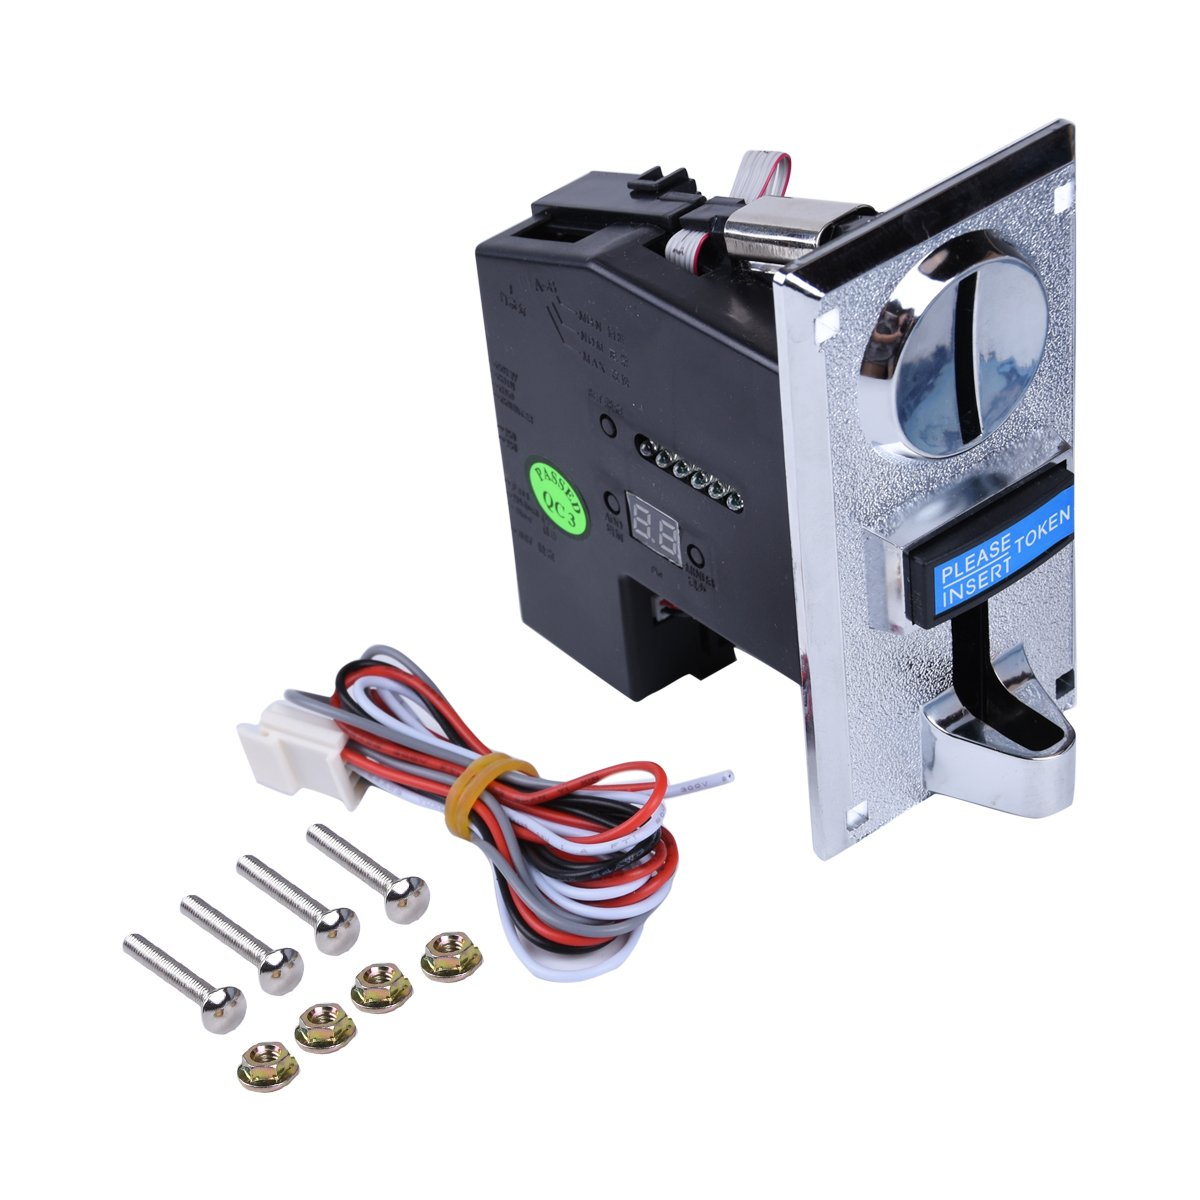 6 Kinds Different Coins Selector Acceptor Validator for Arcade Video Games Vending Machine Part and Coin-Operated Collector Panel Machines Support Multi Signal Output Yang